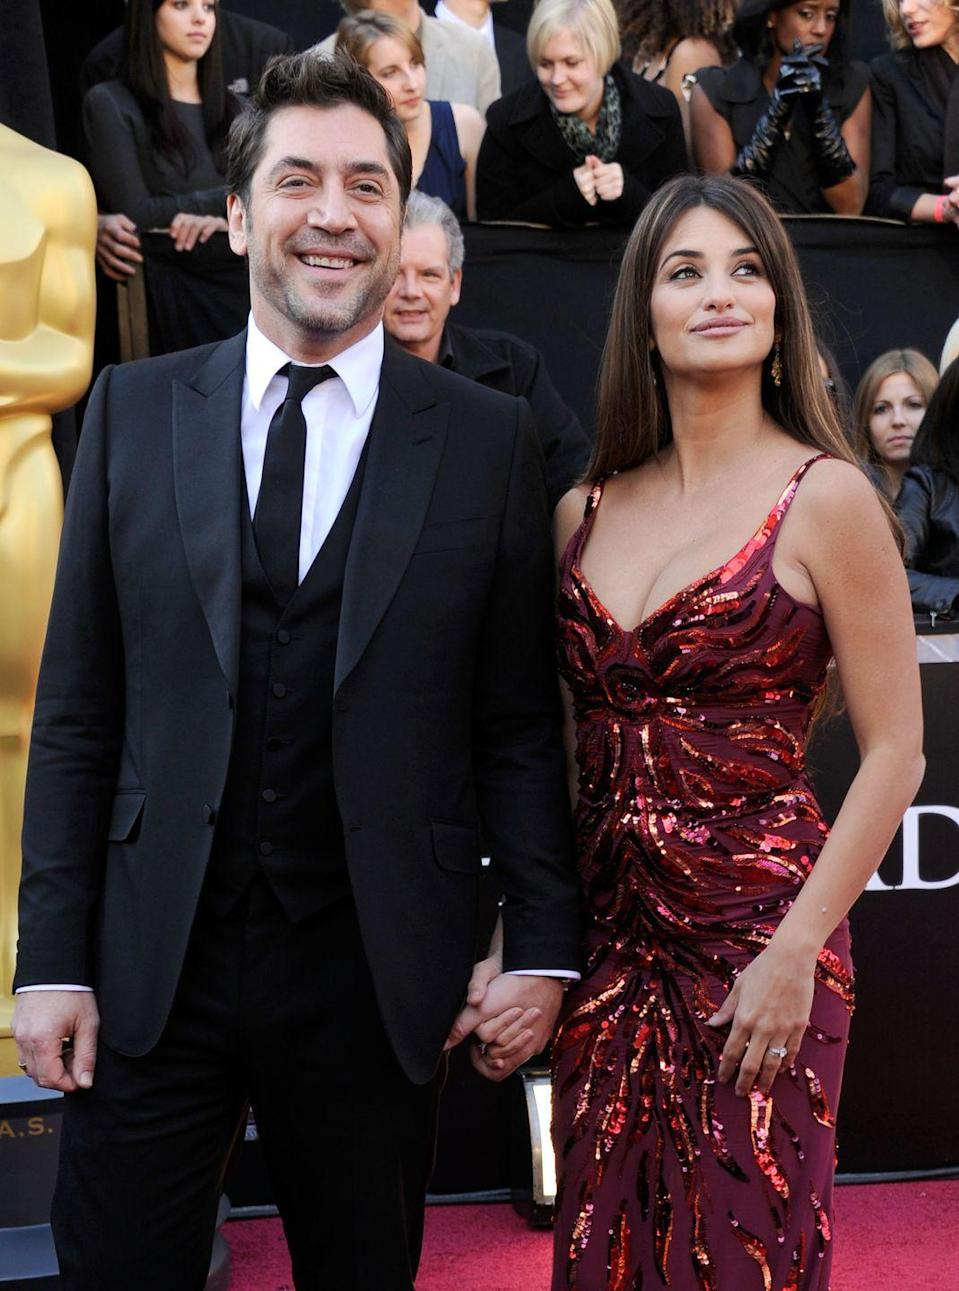 """<p><strong>How long they've been together: </strong>They reportedly began dating in 2007 and married in 2010 in the Bahamas. You decide for yourself: with two beautifully thick Spanish accents, two Oscars, and two adorable children (we can only assume...the paparazzi has left the kids alone for the most part) between them, it's safe to say they qualify as <em>really</em> cute.<br></p><p><strong>Why you forget they're together: </strong>After having her son, Leo, in 2011, Cruz, told <a href=""""http://www.vogue.com/865440/the-dream-life-of-penelope-cruz/"""" rel=""""nofollow noopener"""" target=""""_blank"""" data-ylk=""""slk:Vogue"""" class=""""link rapid-noclick-resp"""">Vogue</a>: """"I want my son—and my kids if I have more—to grow up in a way that is as anonymous as possible."""" Cruz and Bardem have taken this seriously: They welcomed a second child, daughter Luna, in 2013 to minimal fanfare.<br></p>"""